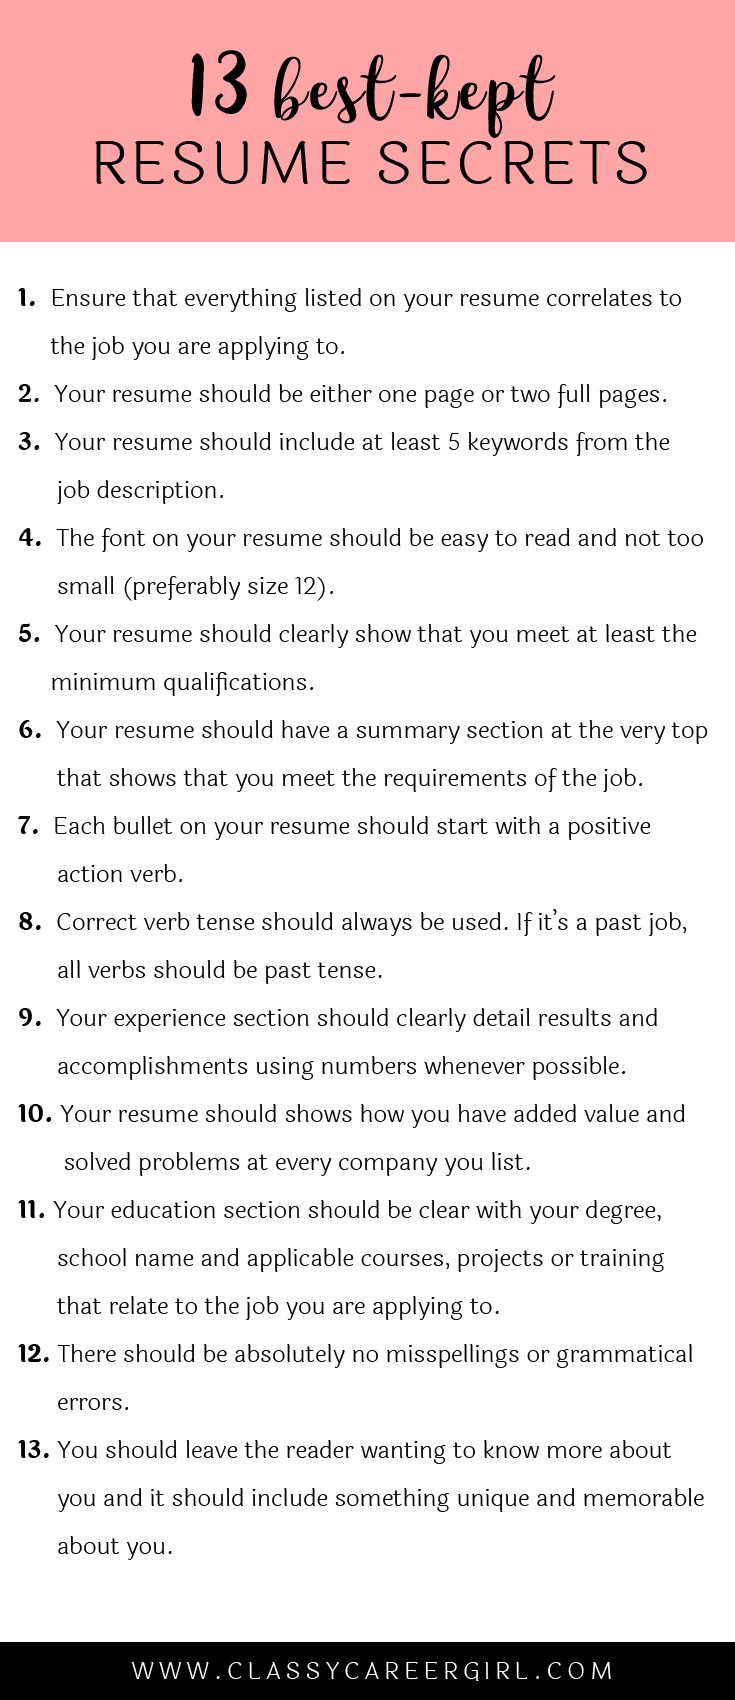 Some hiring managers will toss your resume out if you don't know these 13 resume secrets.